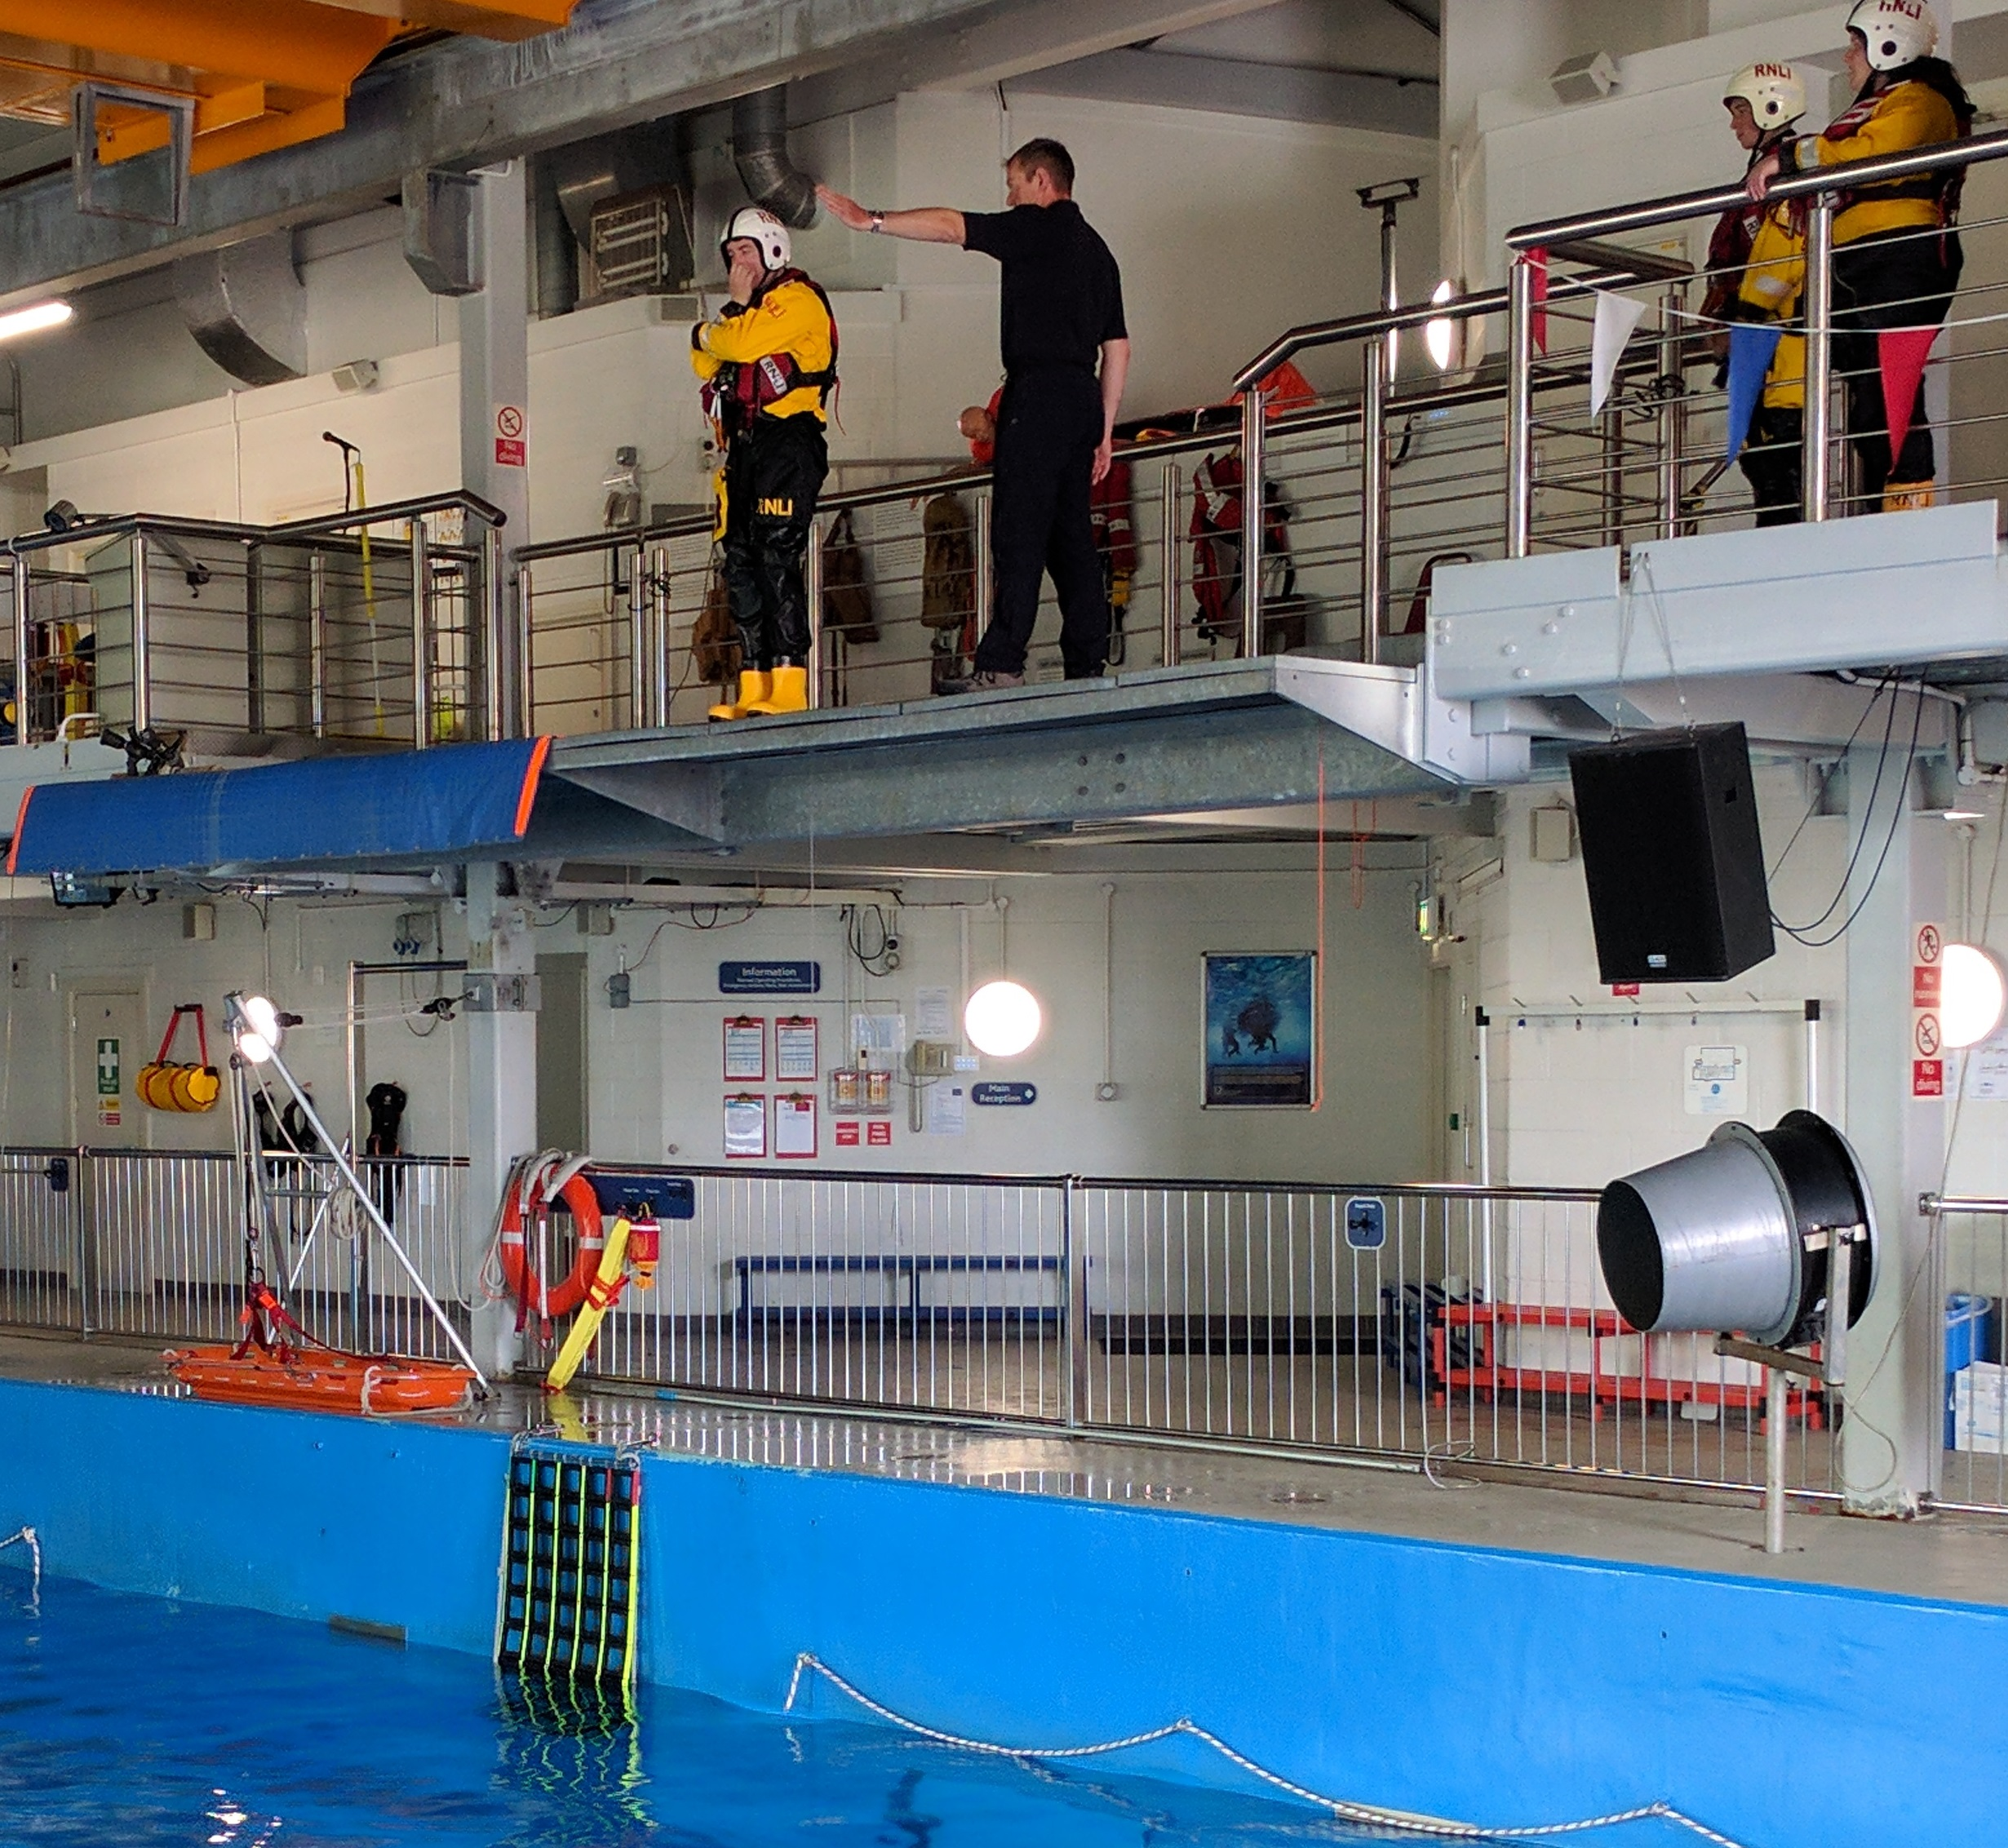 A volunteer learning how to 'abandon ship' with a 4m jump into water